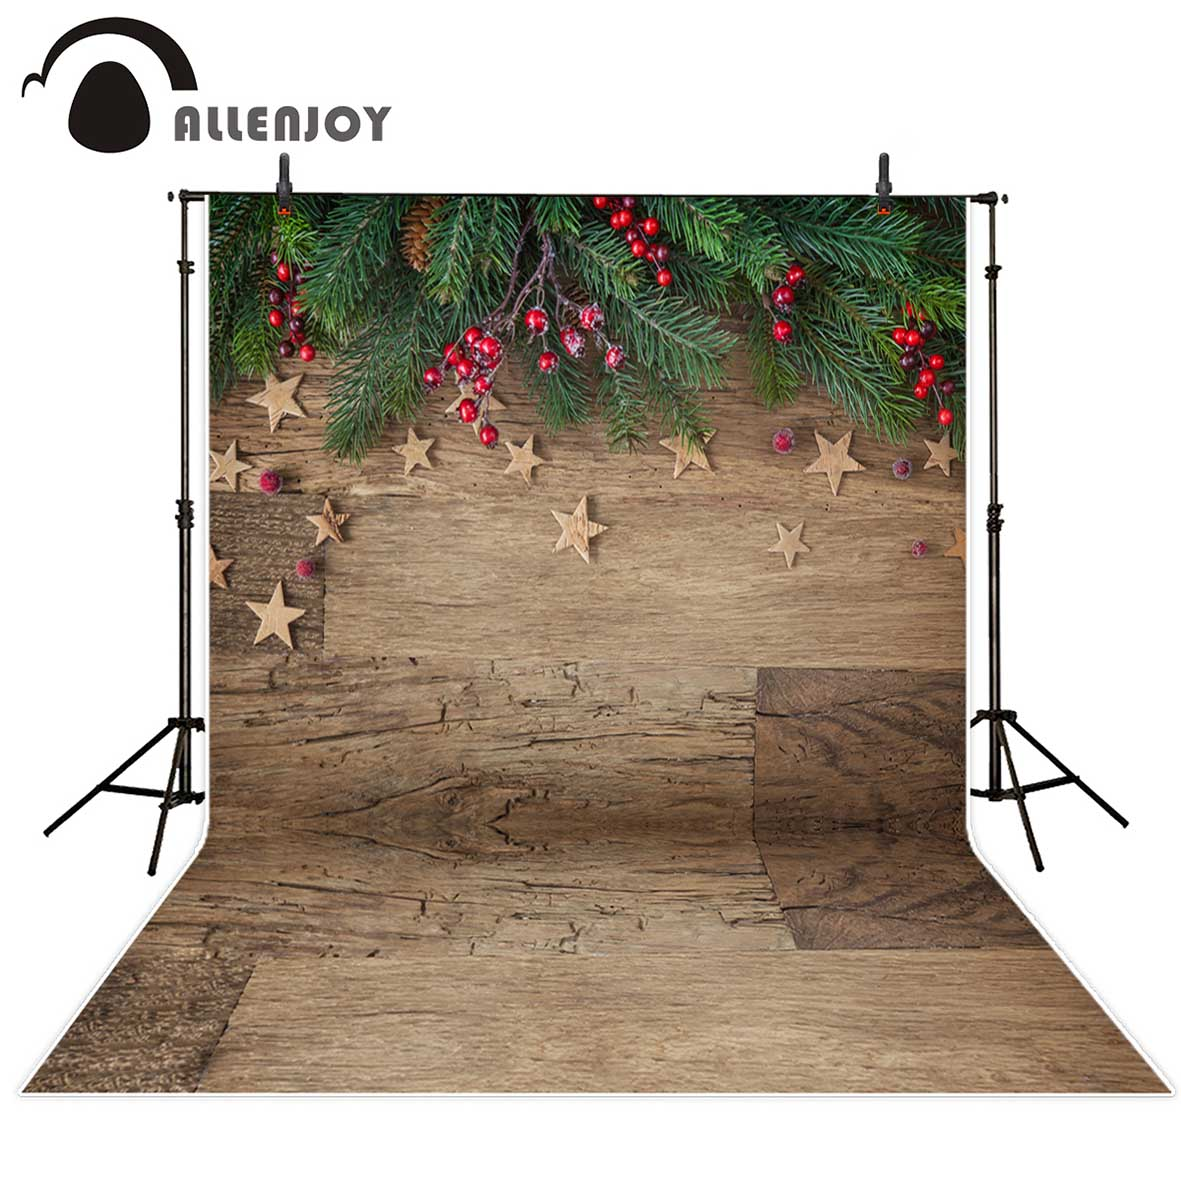 Allenjoy backgrounds for photo studio Christmas wood stars green leaves backdrop photocall photobooth photographic allenjoy photographic backdrop spider owl moon hand halloween invitation card party baby photocall backgrounds for photo studio